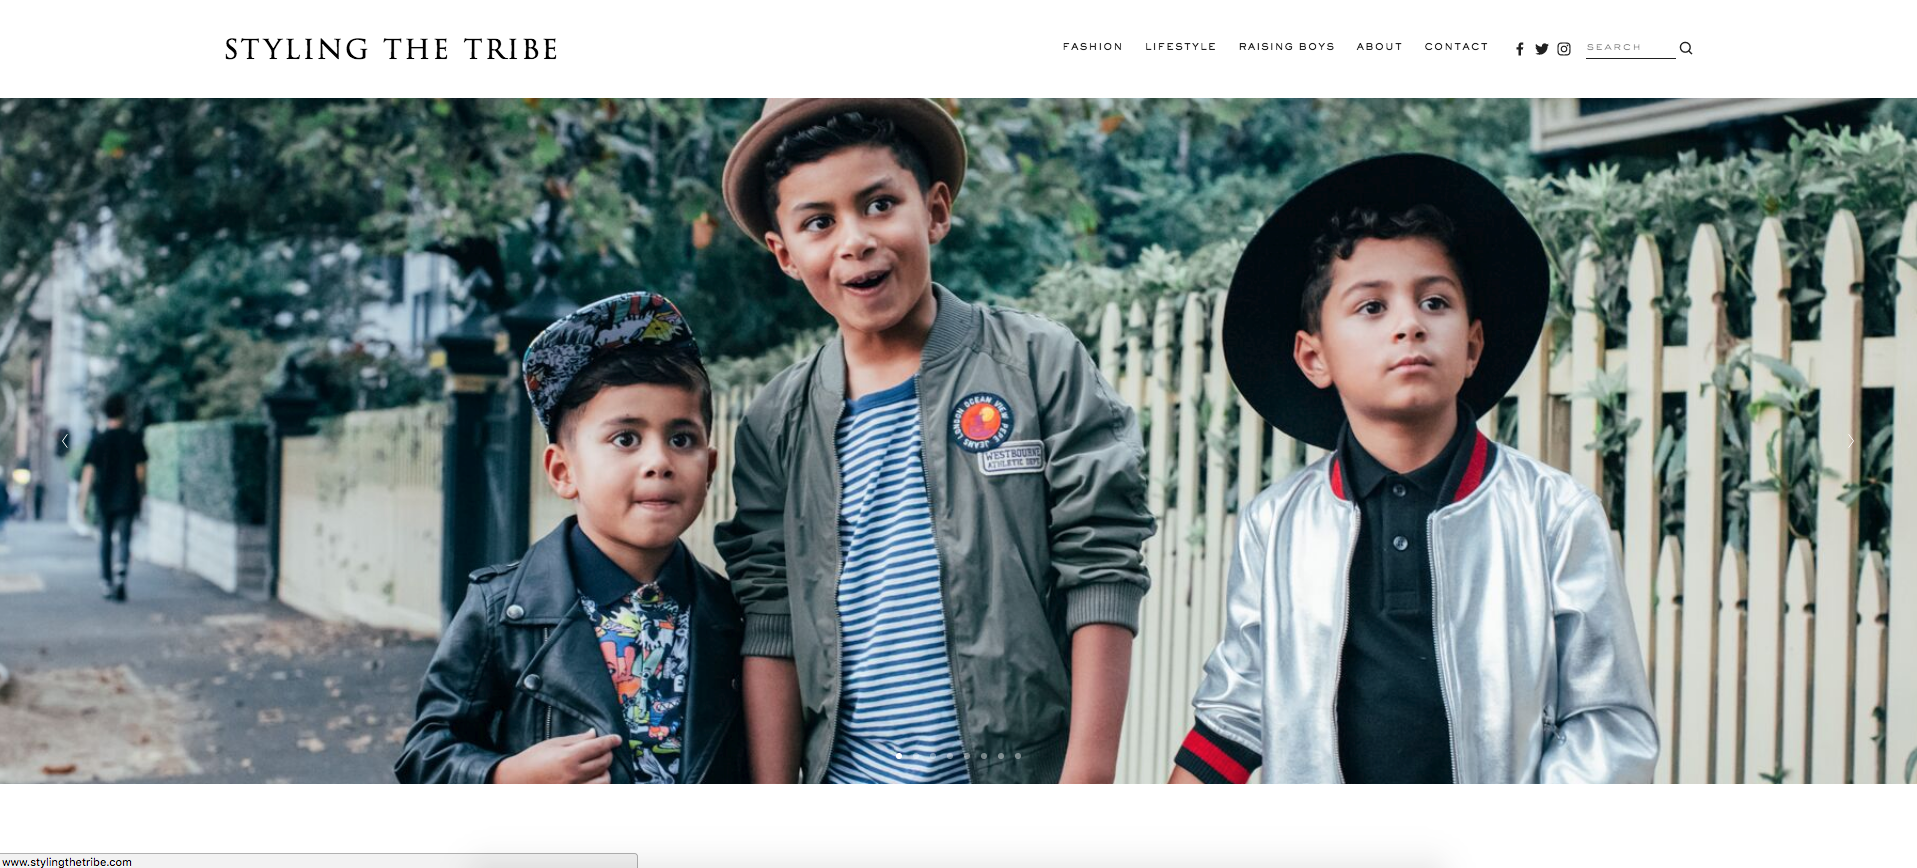 STYLING THE TRIBE - FASHION BLOG WEBSITE